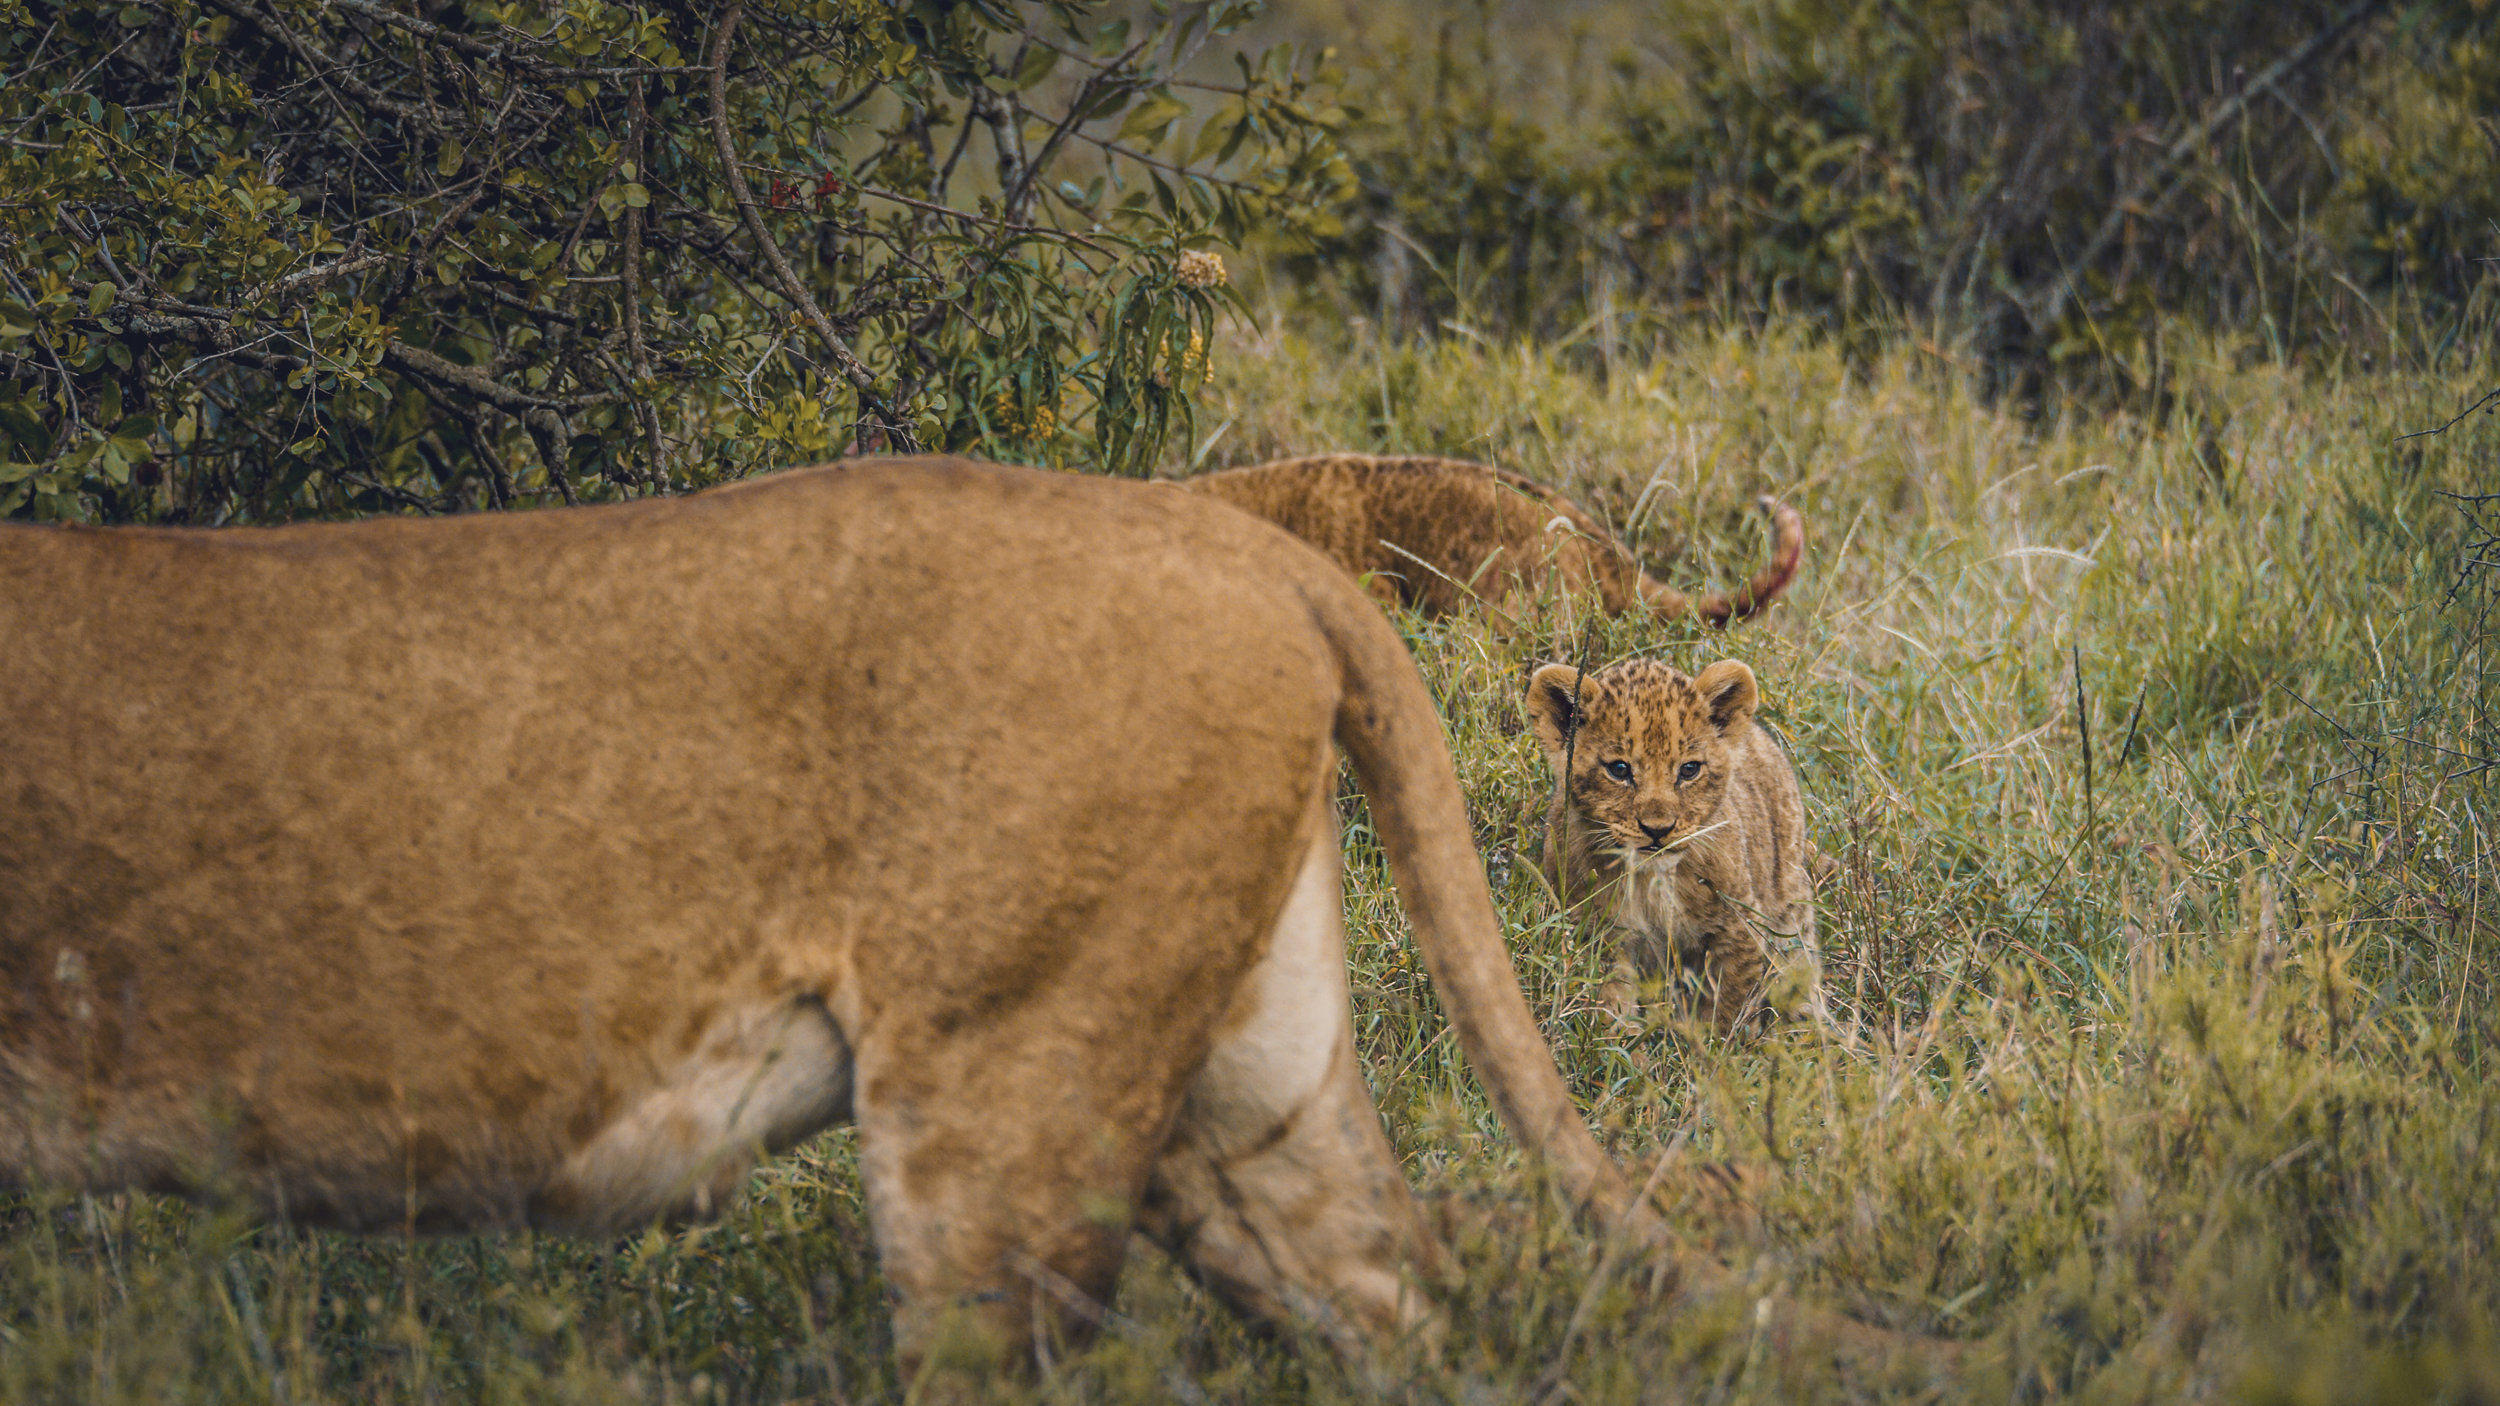 LION CUB FOLLOWING LIONESS.0001311.jpg